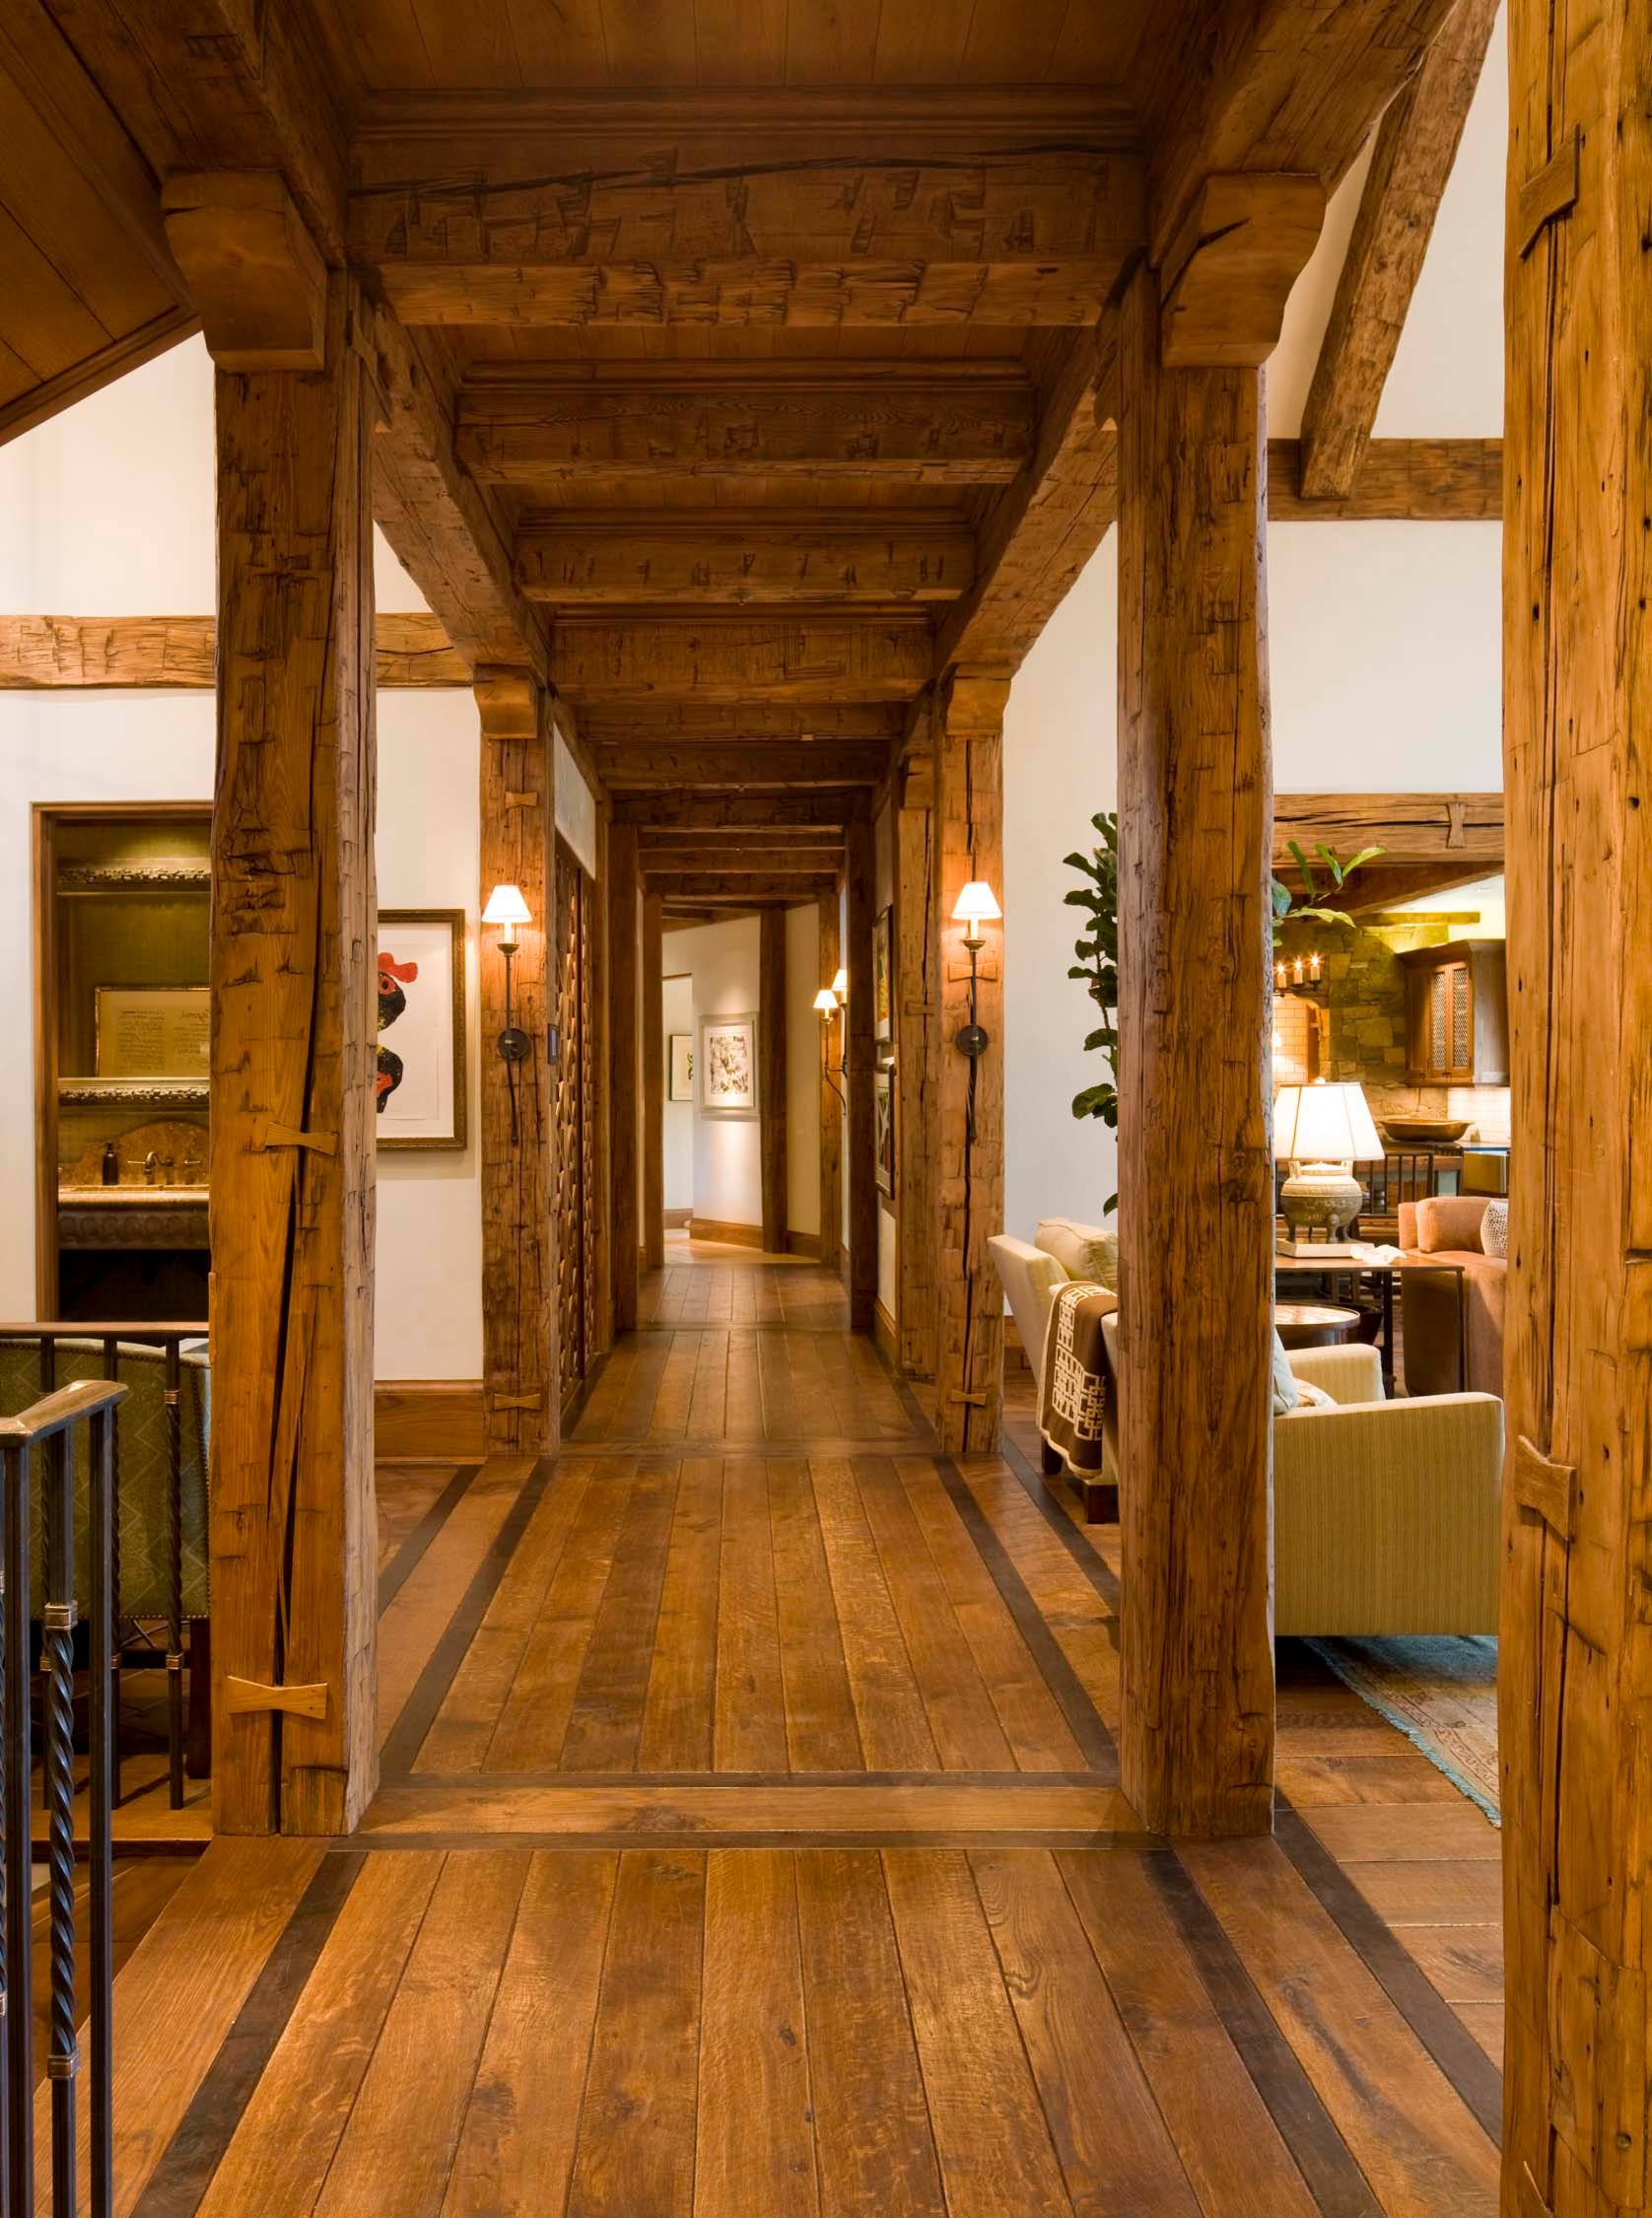 Home Interior Design Ideas: 15 Great Rustic Hallway Designs That Will Inspire You With